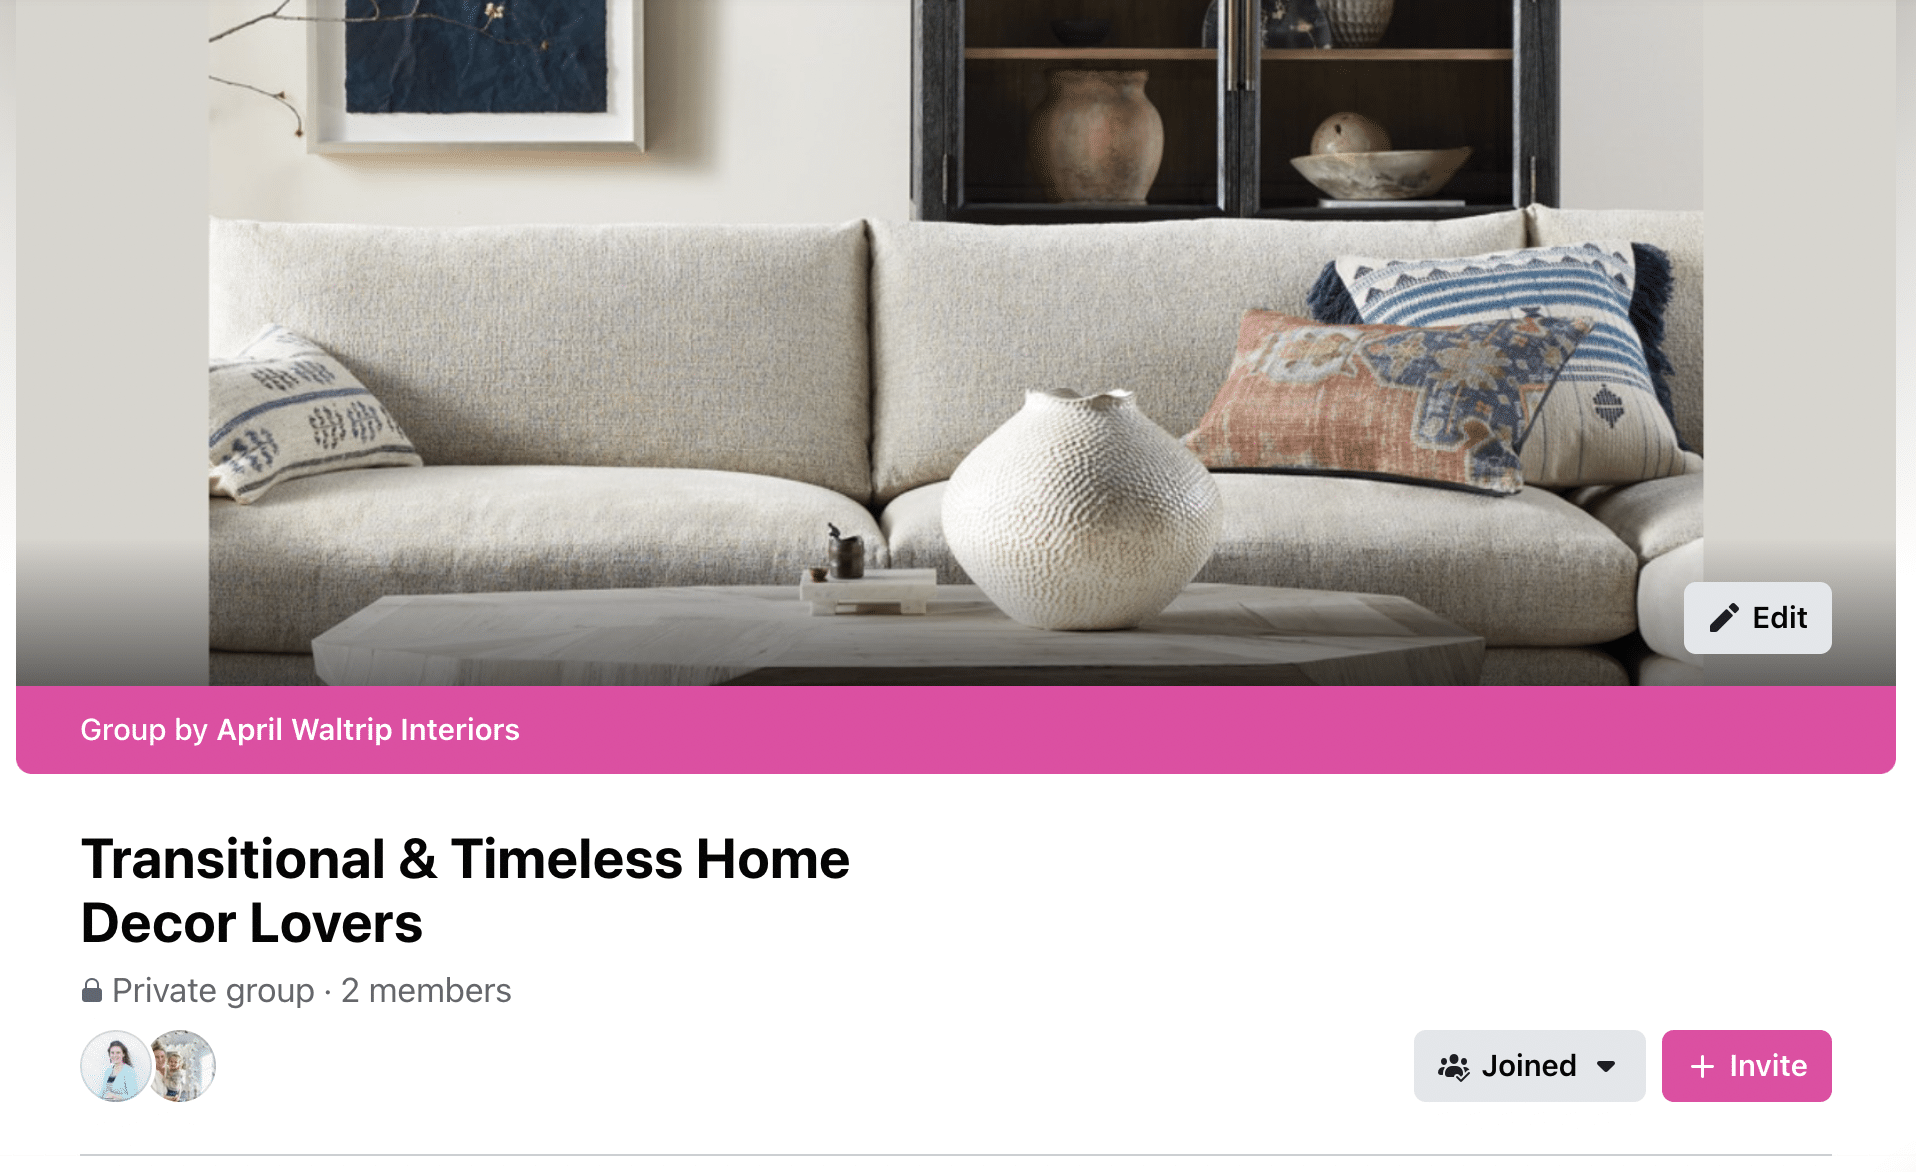 Transitional & Timeless Home Decor Lovers Facebook Group